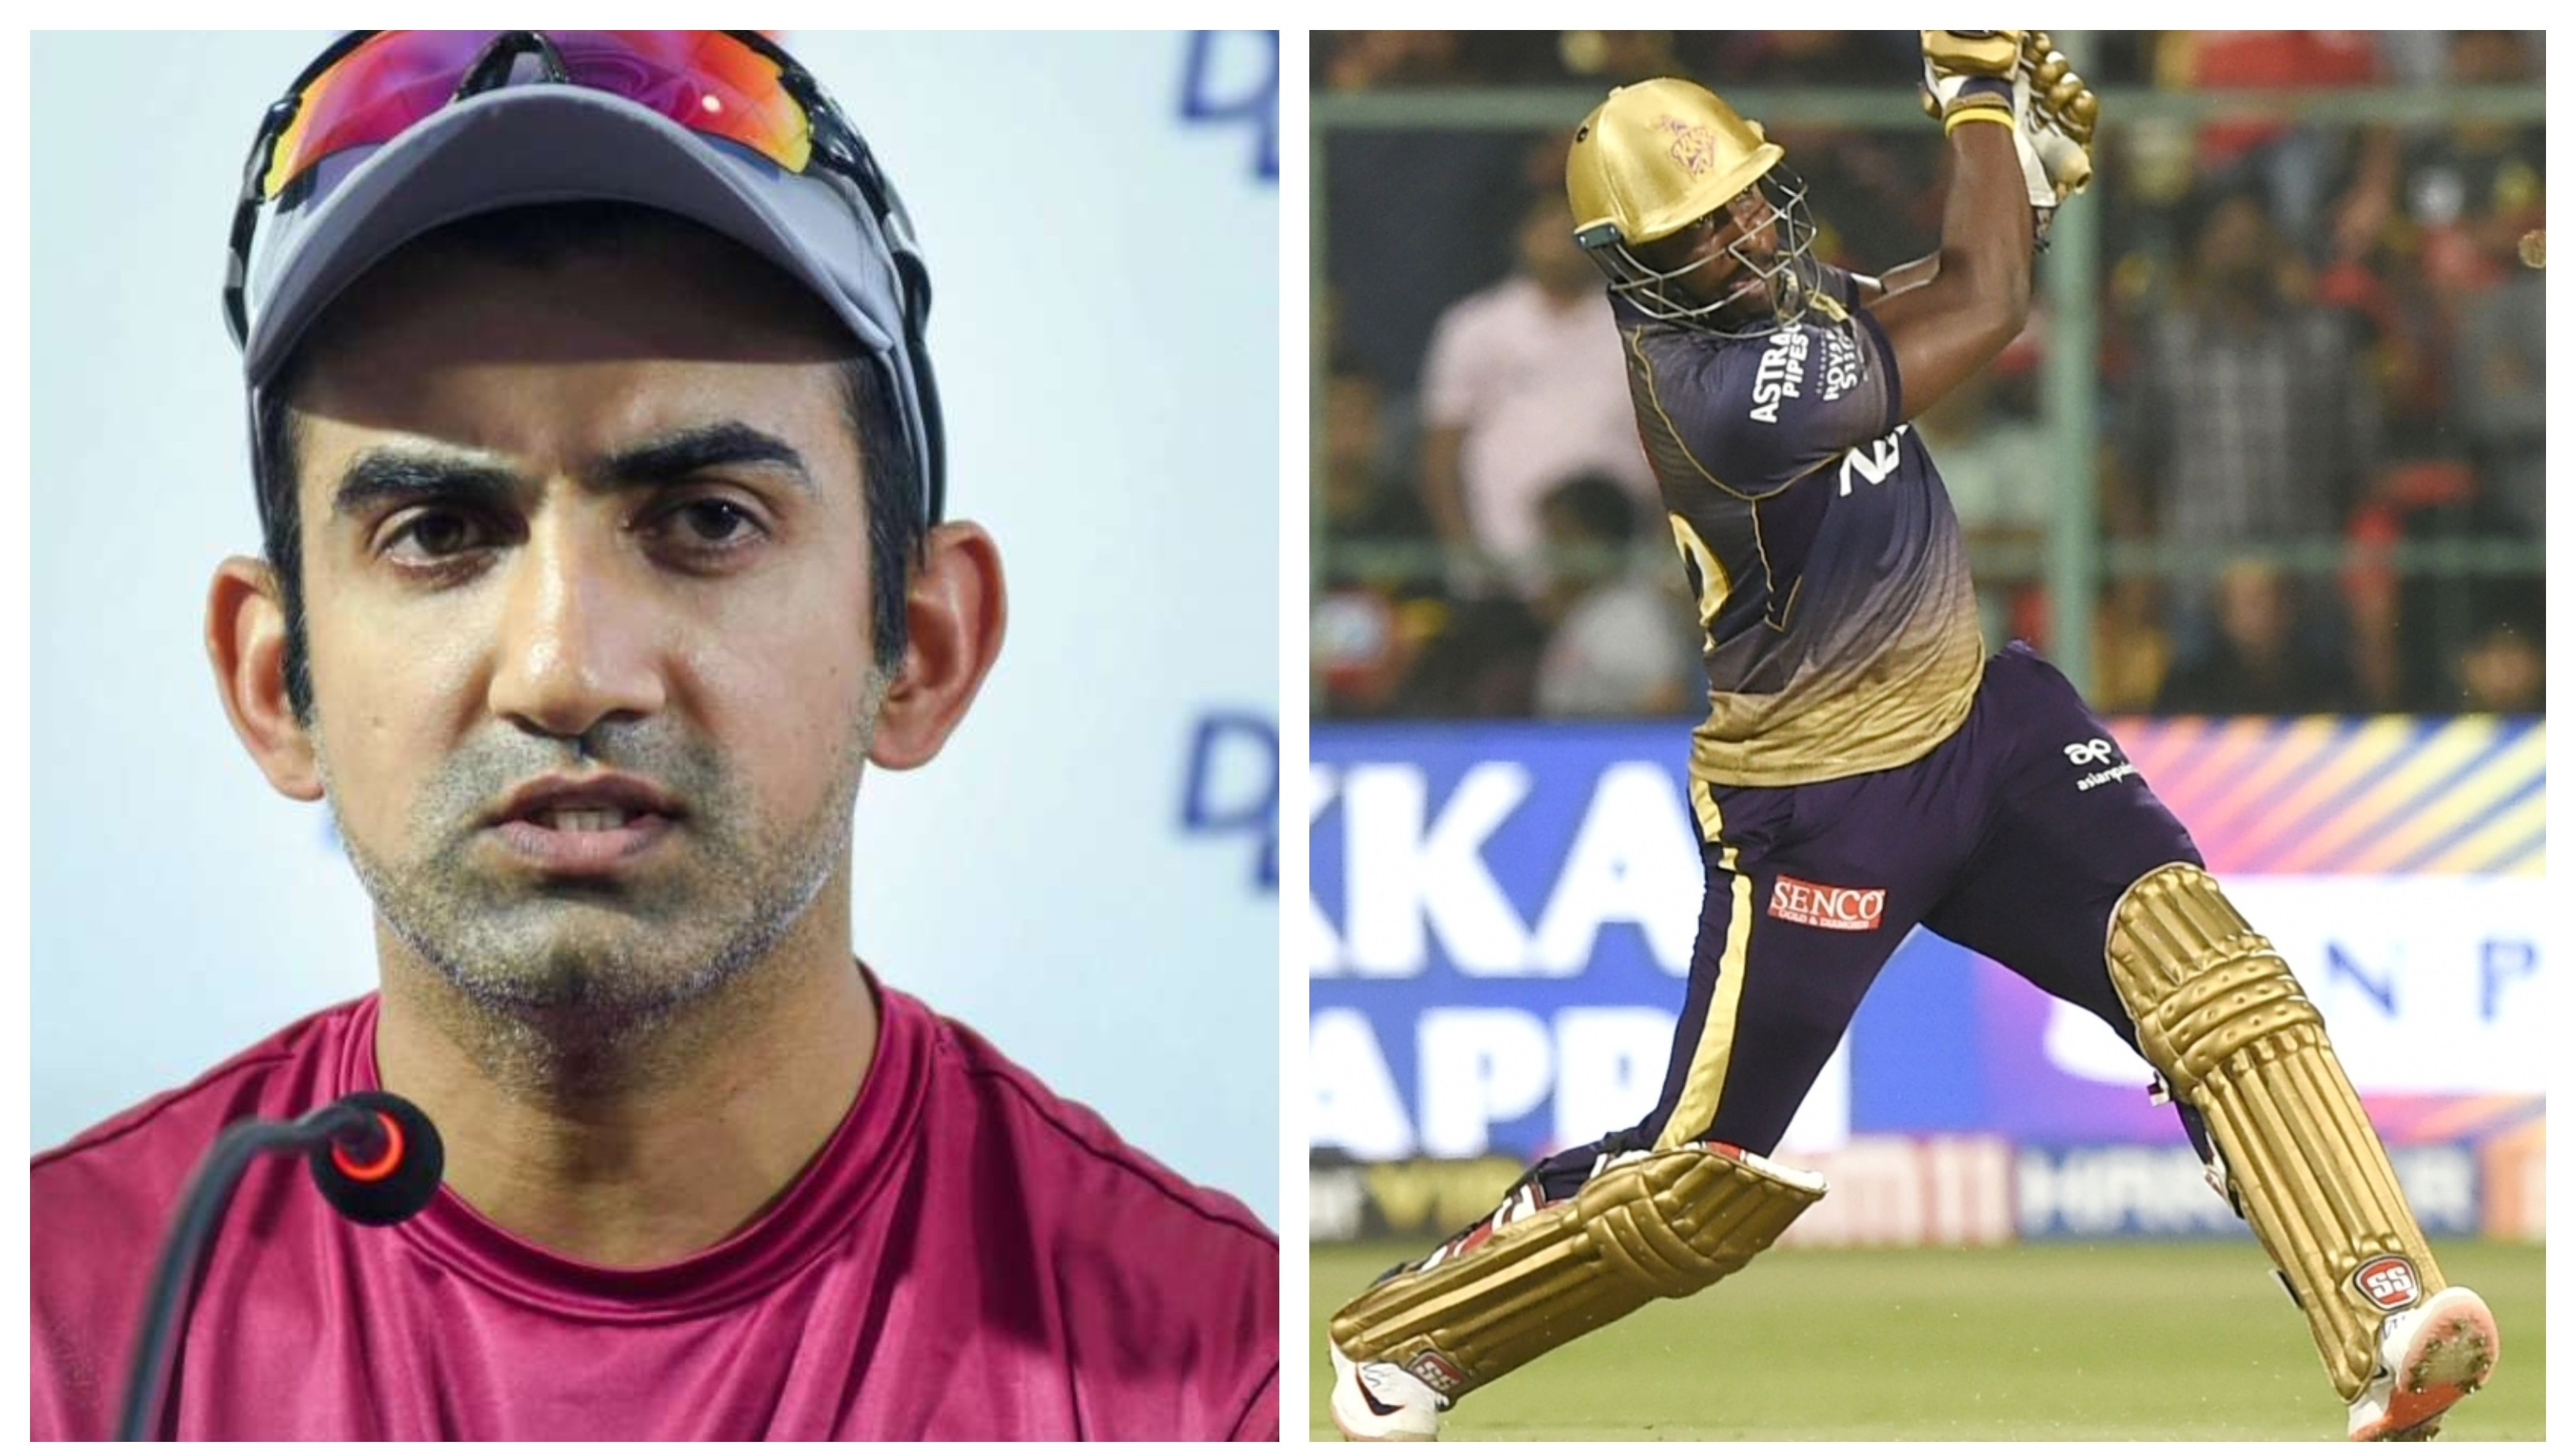 IPL 2020: Gautam Gambhir names a bowler who can trouble Andre Russell in the upcoming IPL